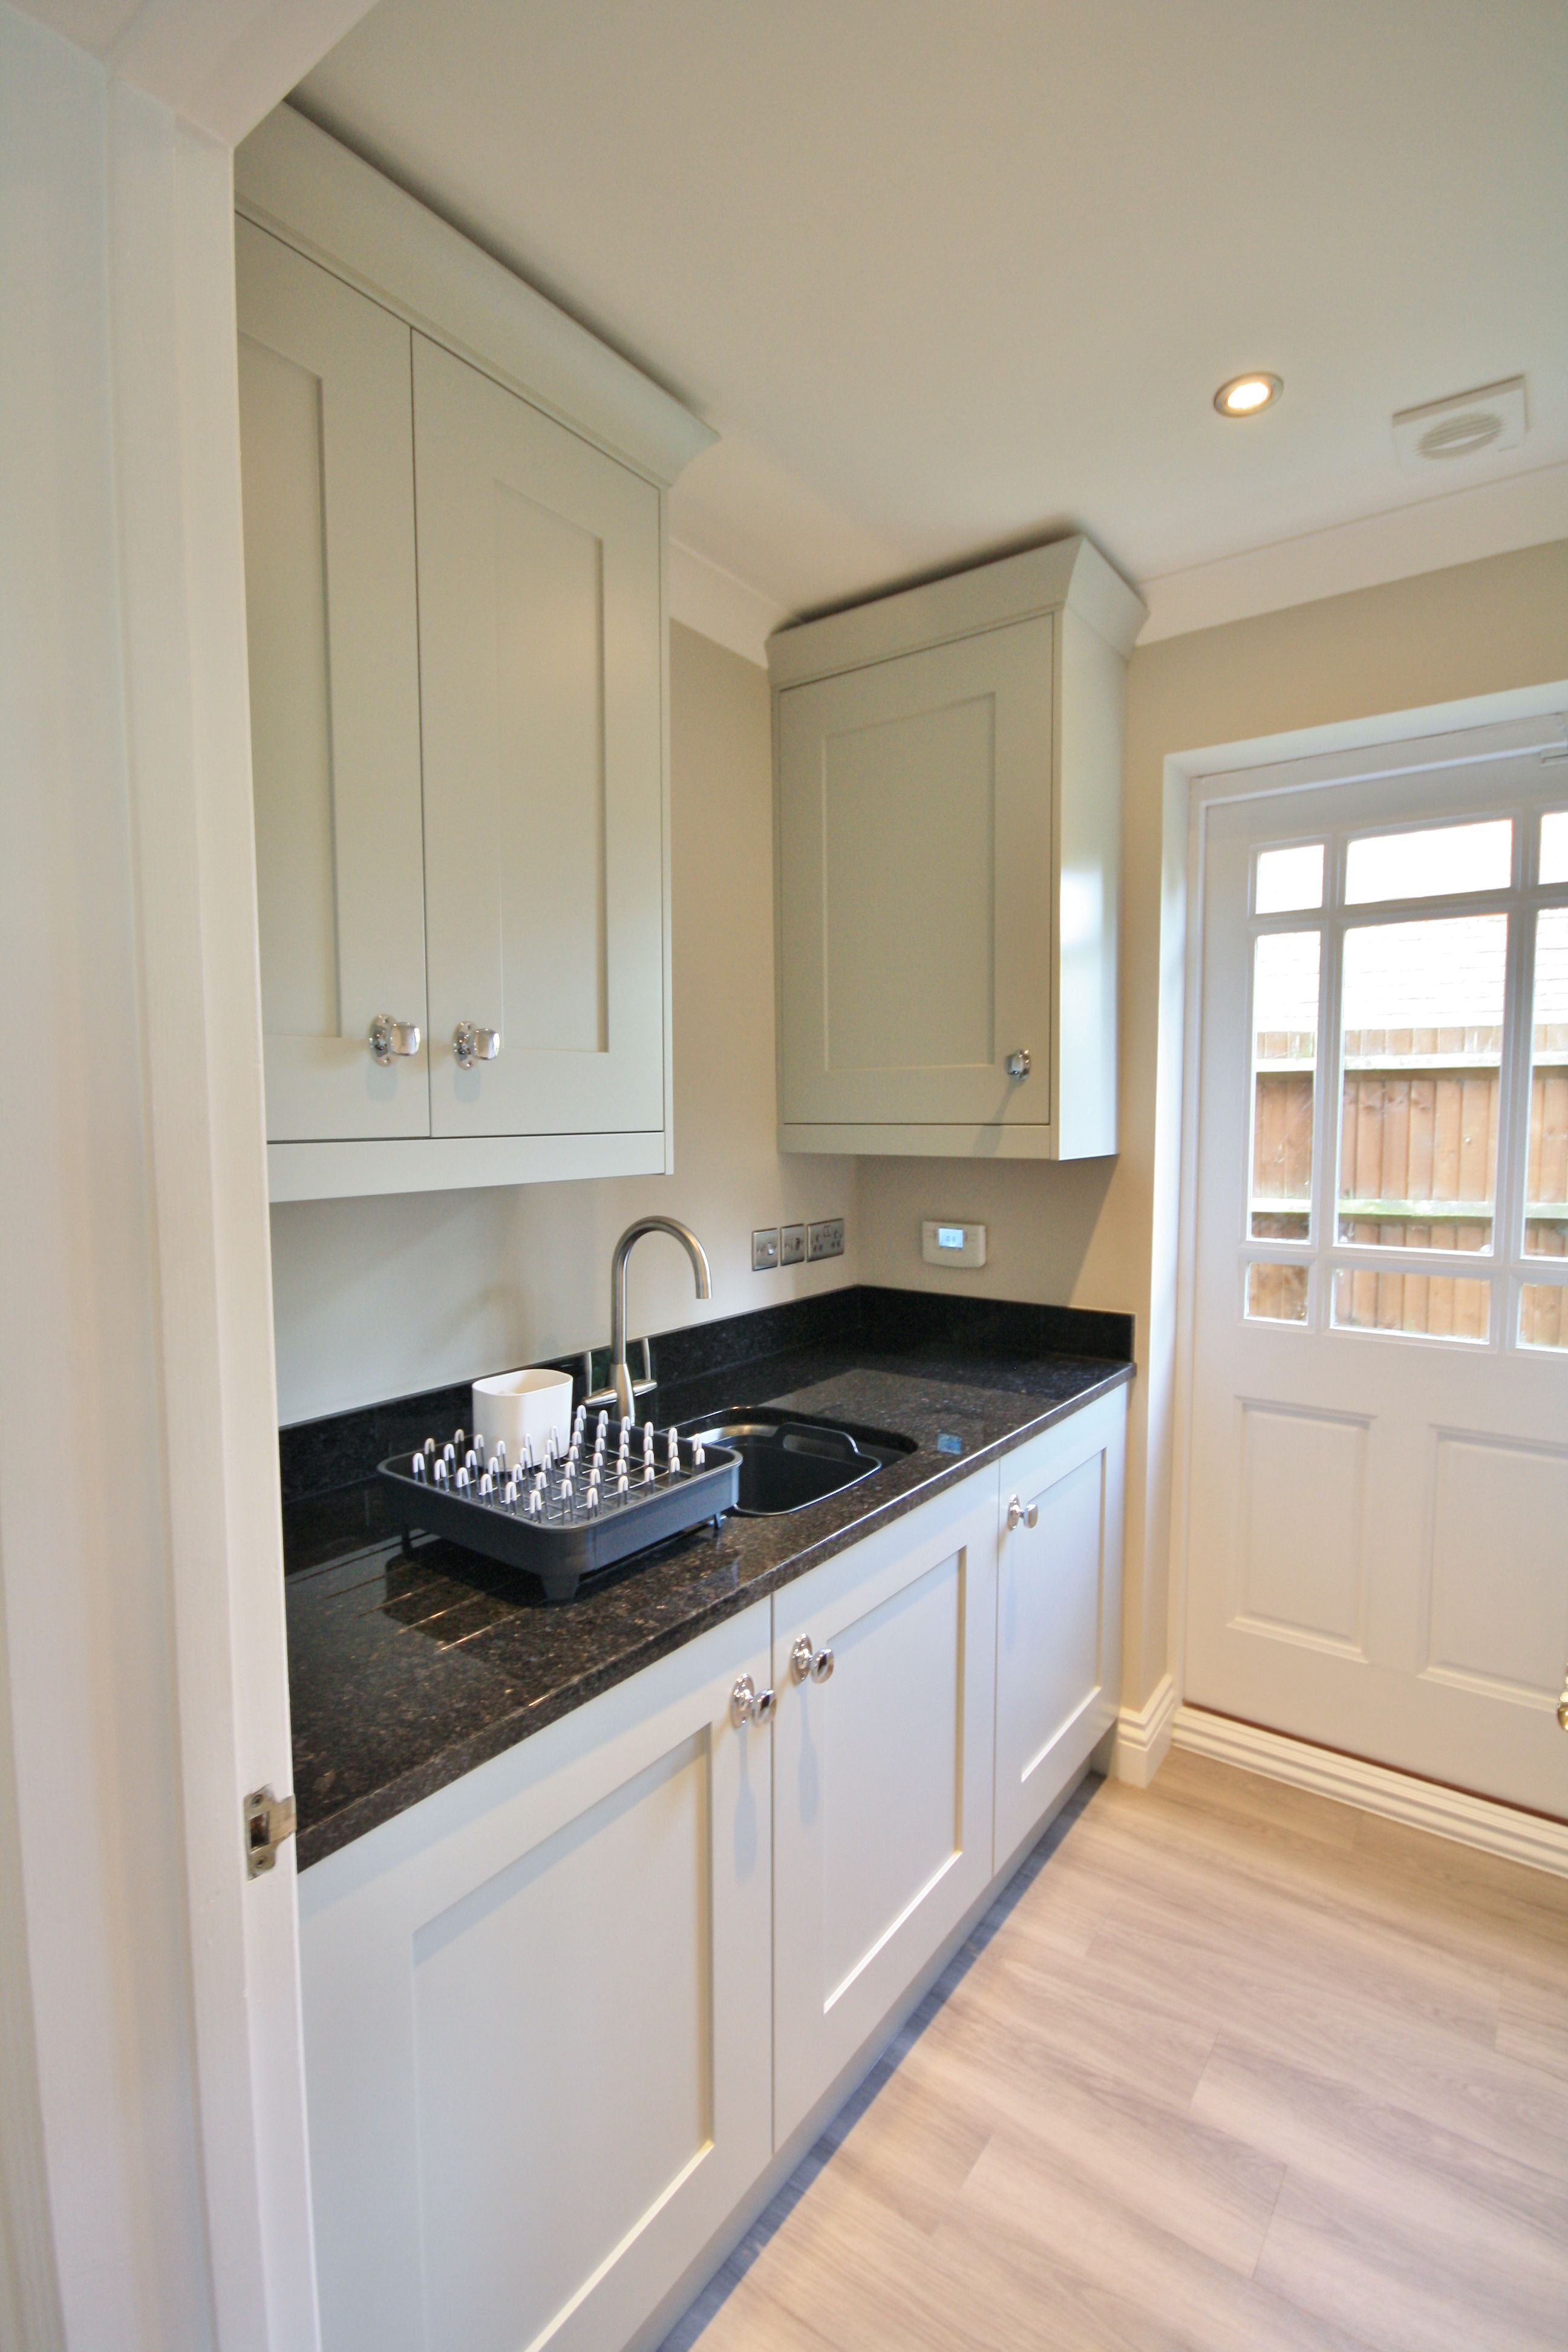 Matching Partridge Grey Utility With Black Granite Worktops And Up